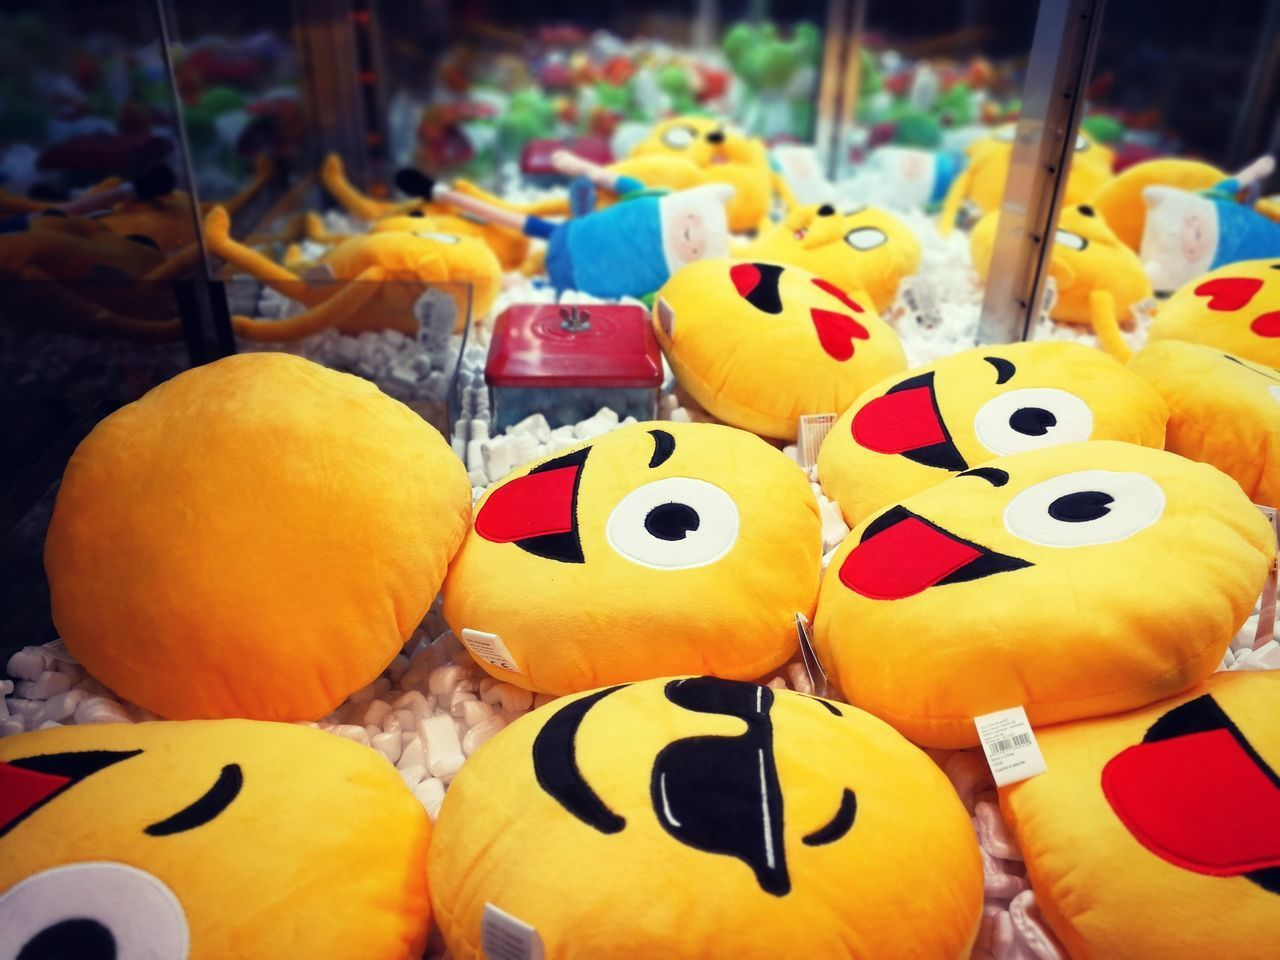 CLOSE-UP OF TOYS FOR SALE IN MARKET STALL